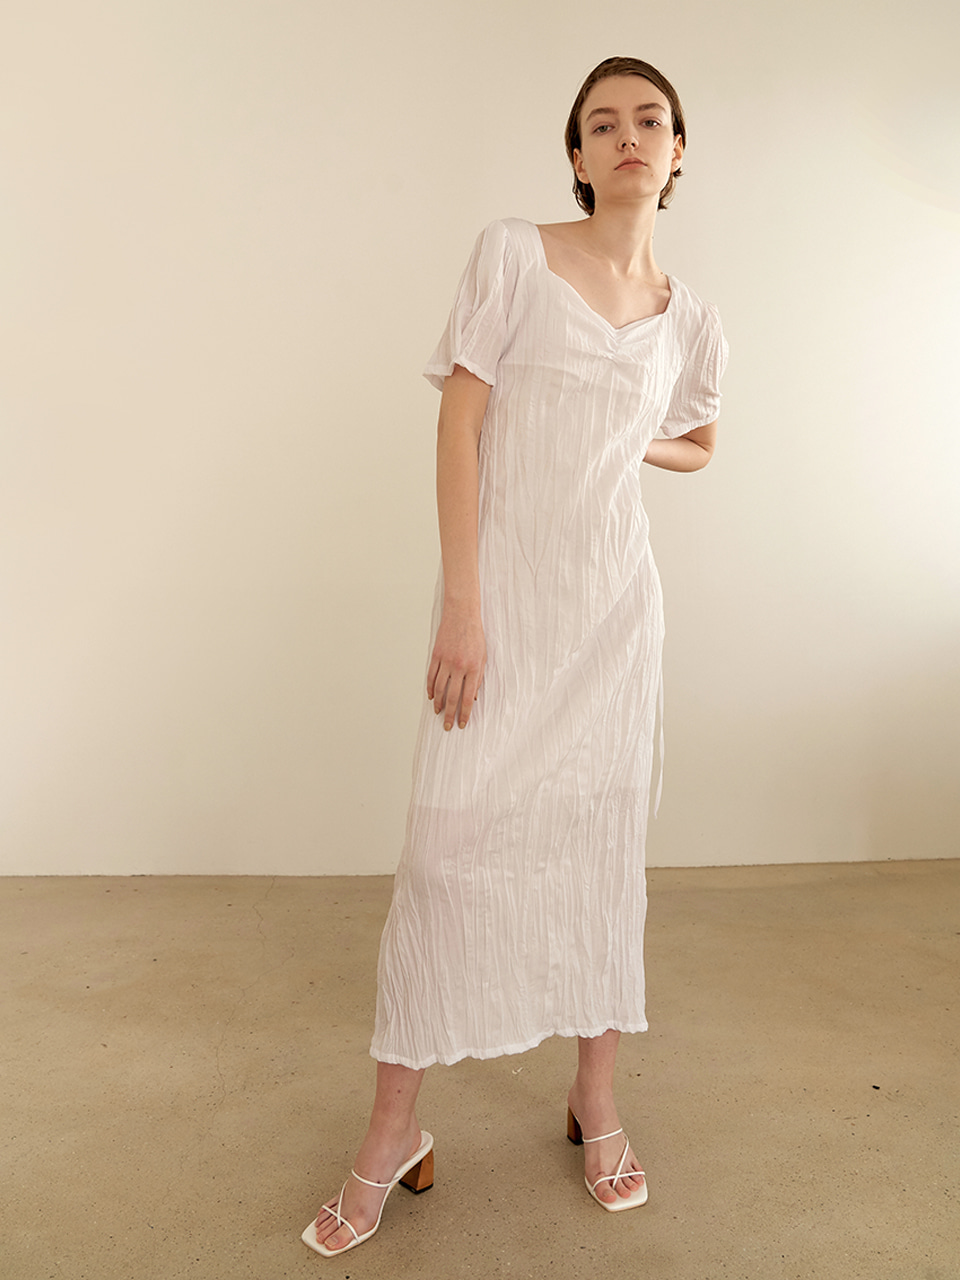 Halfmoon shirring dress - white [5/28예약배송]